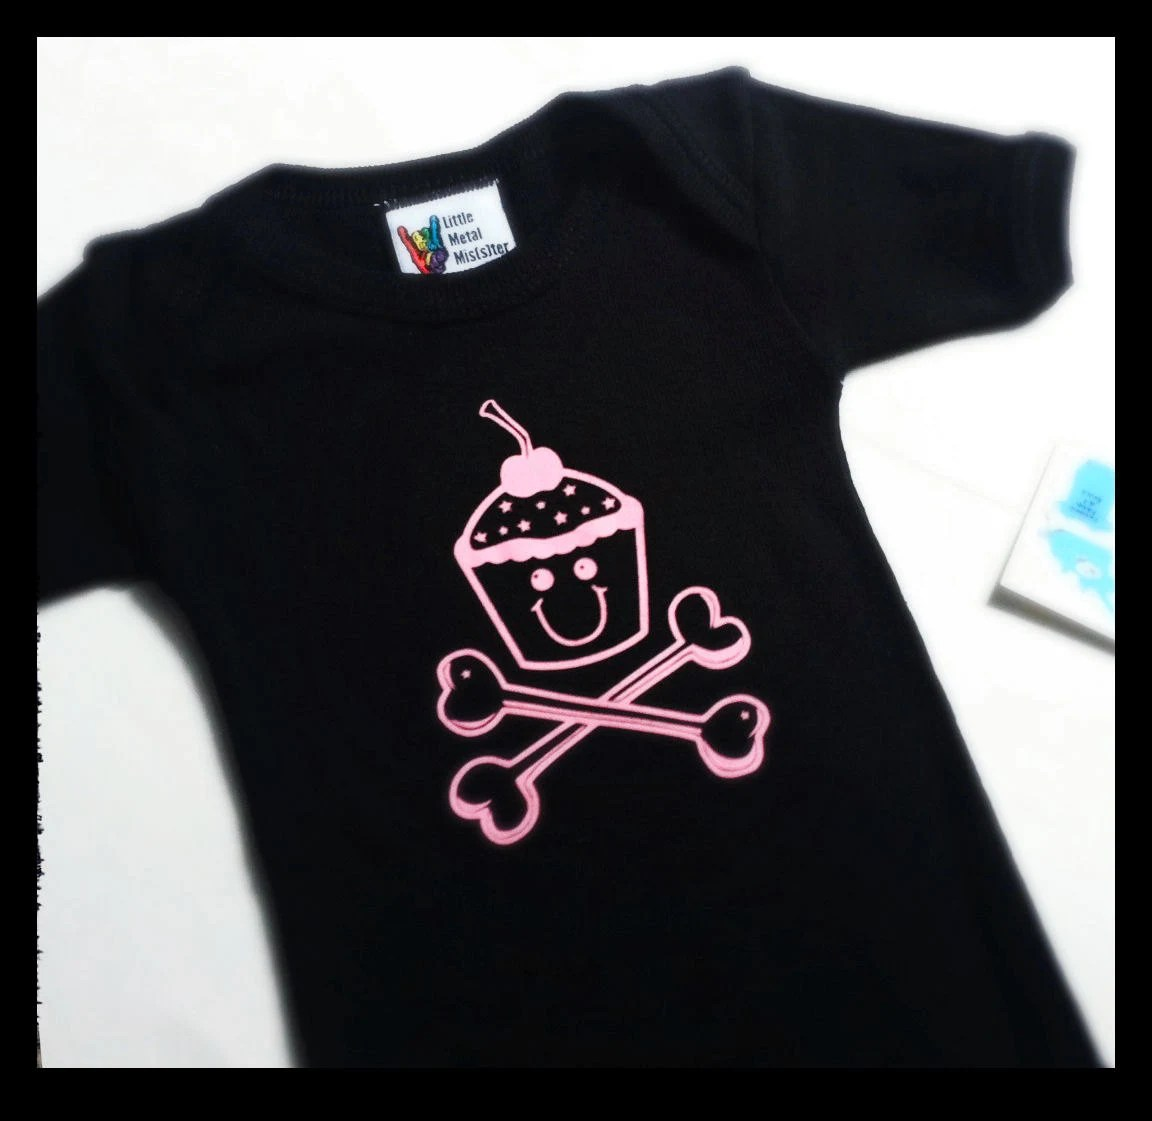 Cupcakes & Crossbones 6 months -- adorable for punk rock / heavy metal family with baby girl. Black and pink onesie